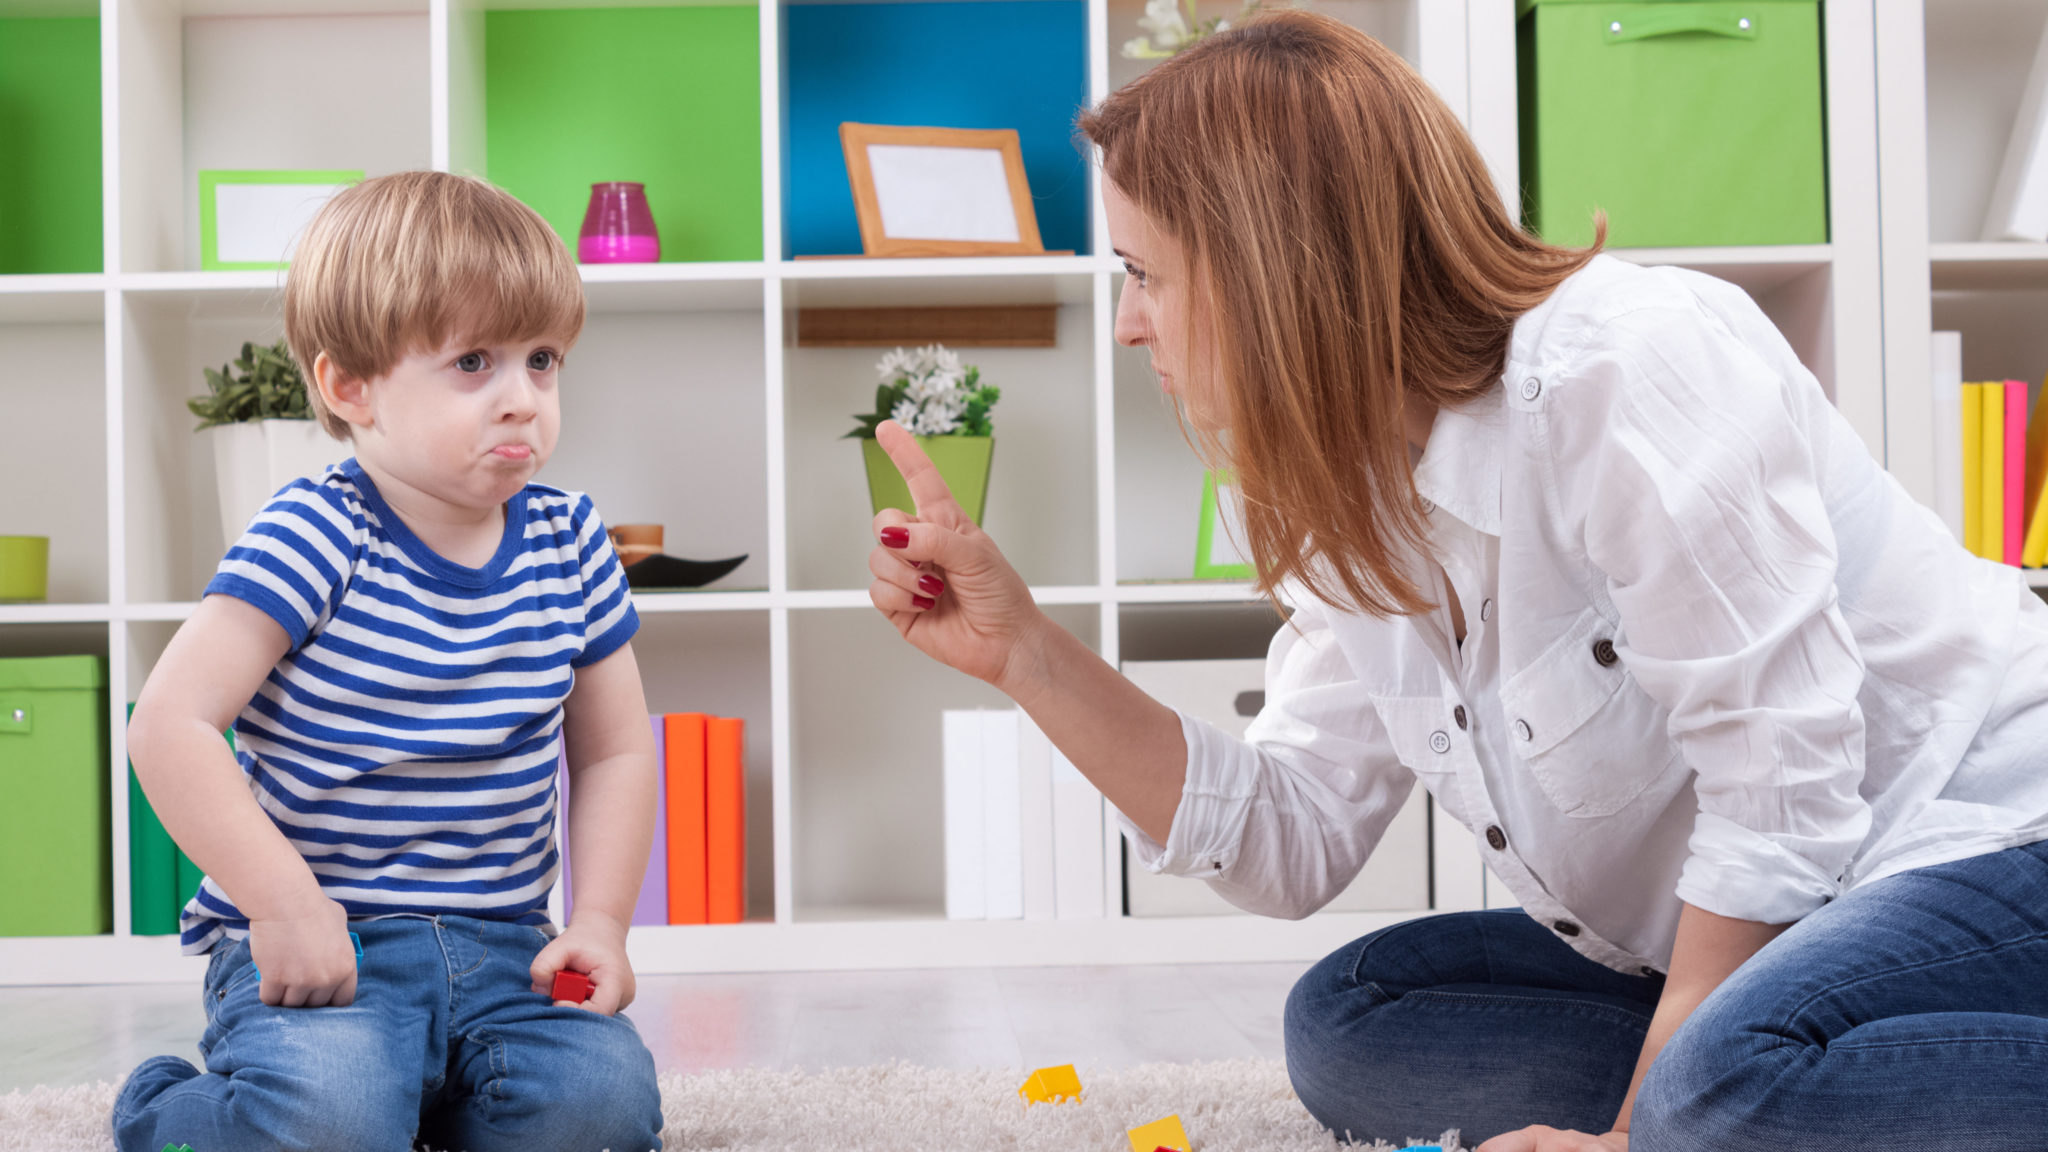 Learn how to discipline a 2 year old without hitting them so they learn and grow from their poor behavior.